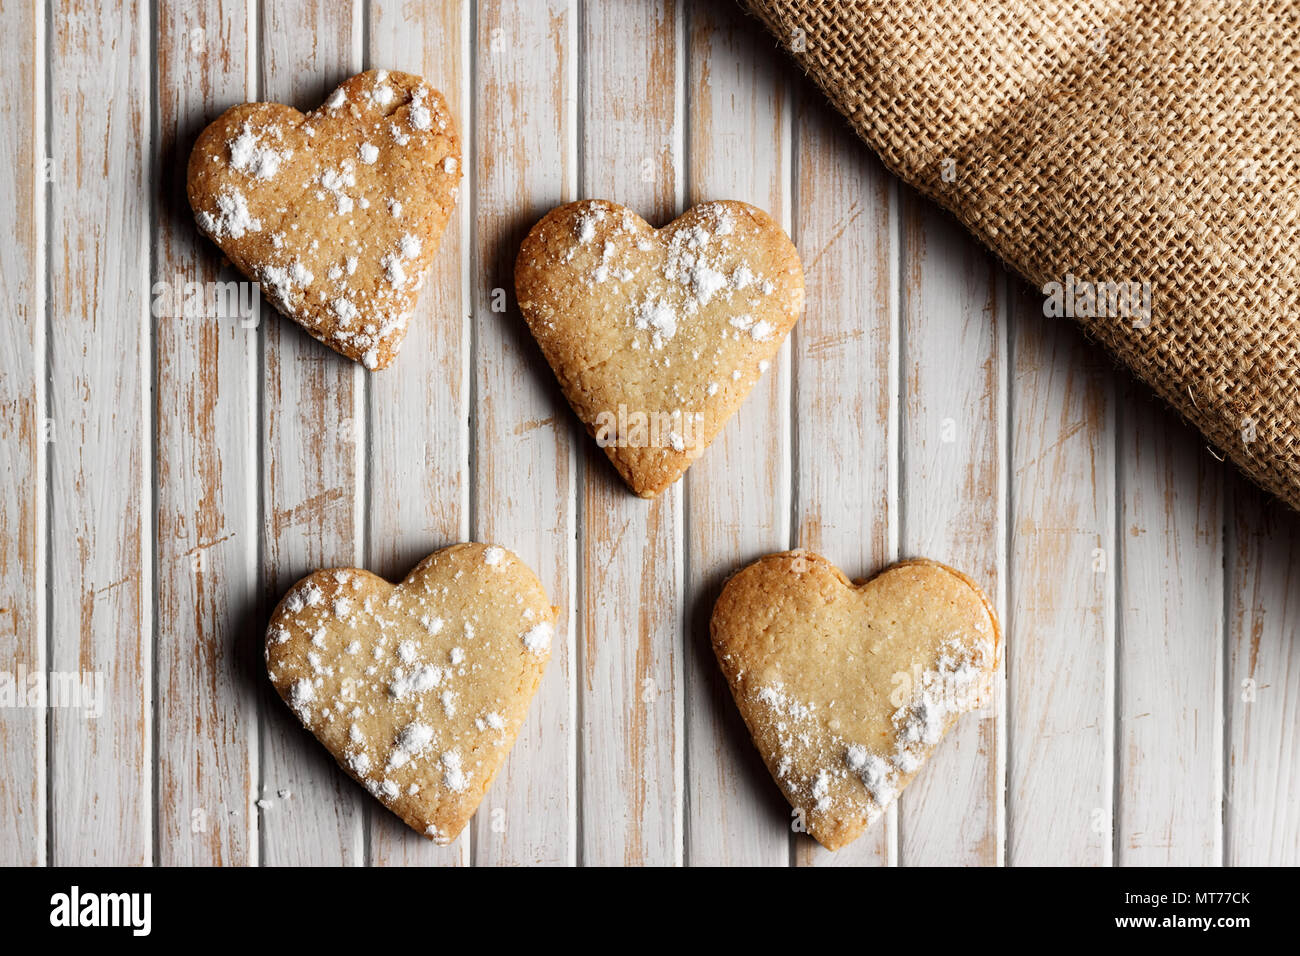 Delicious home-made heart-shaped cookies sprinkled with icing sugar in a wooden board. Horizontal image seen from above. - Stock Image